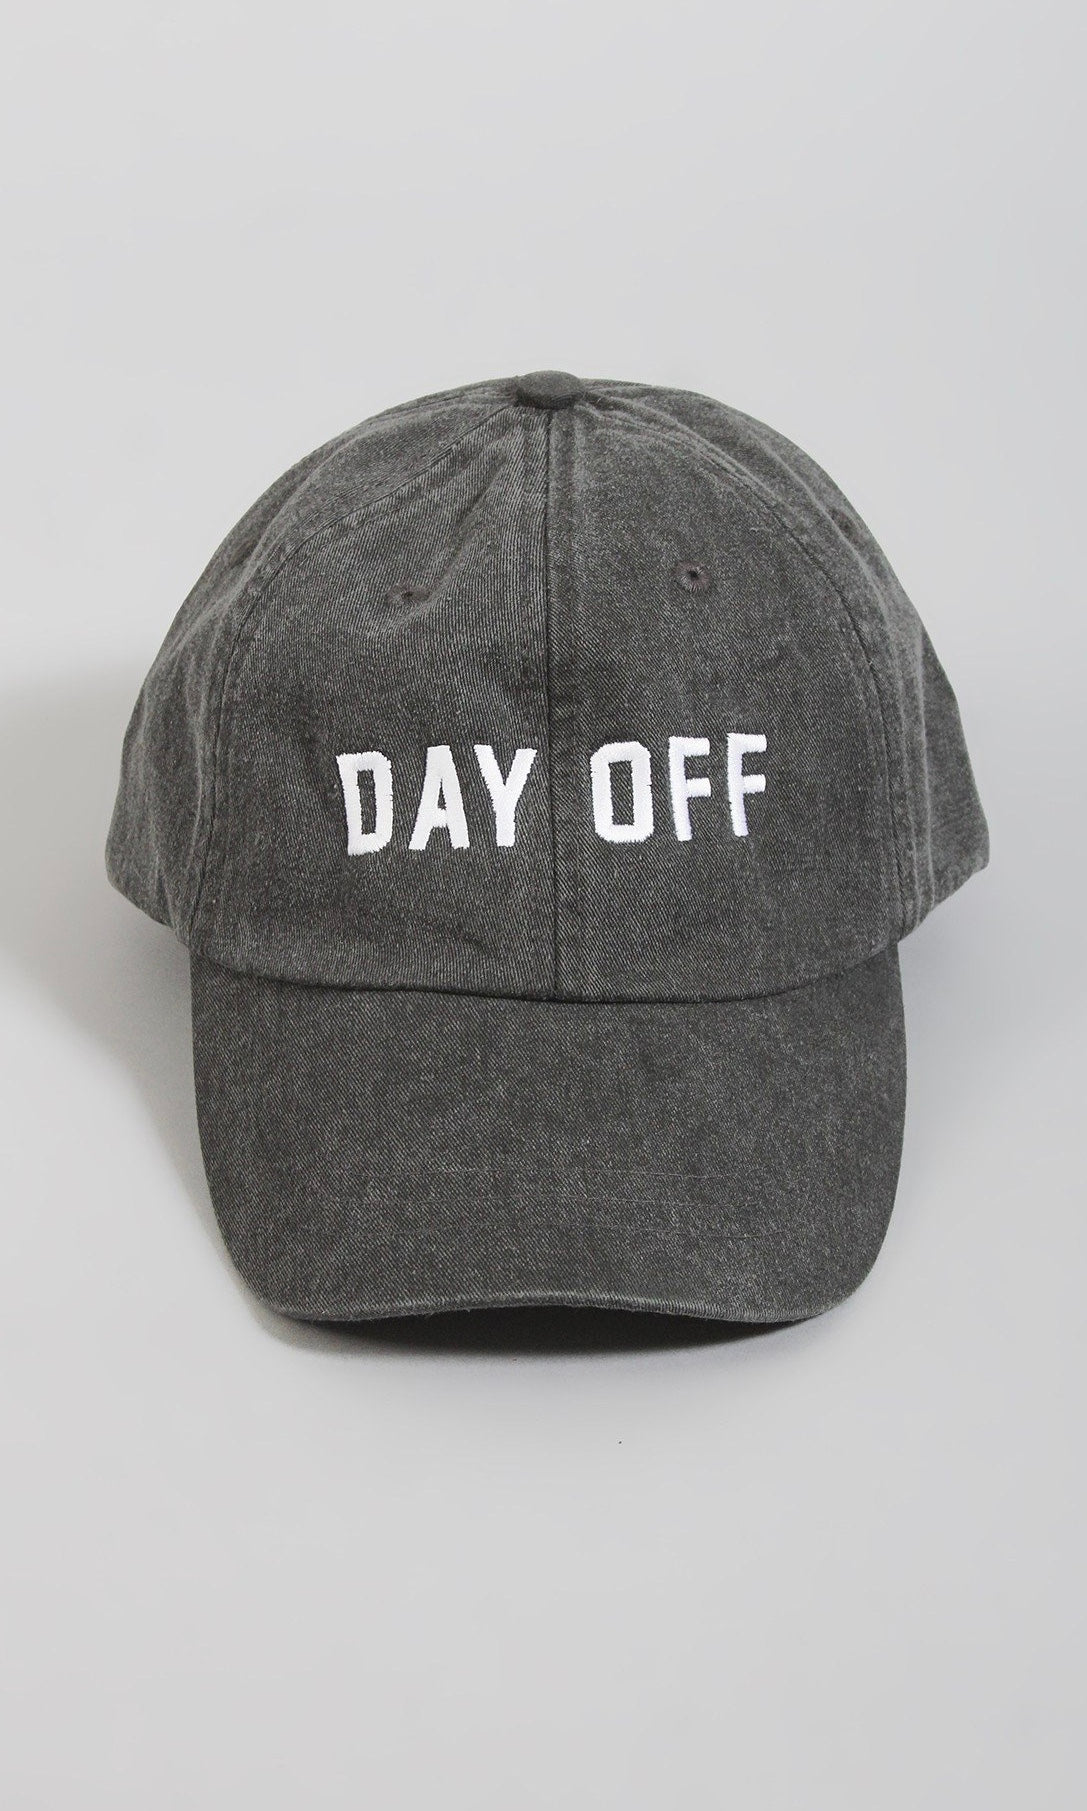 DAY OFF HAT